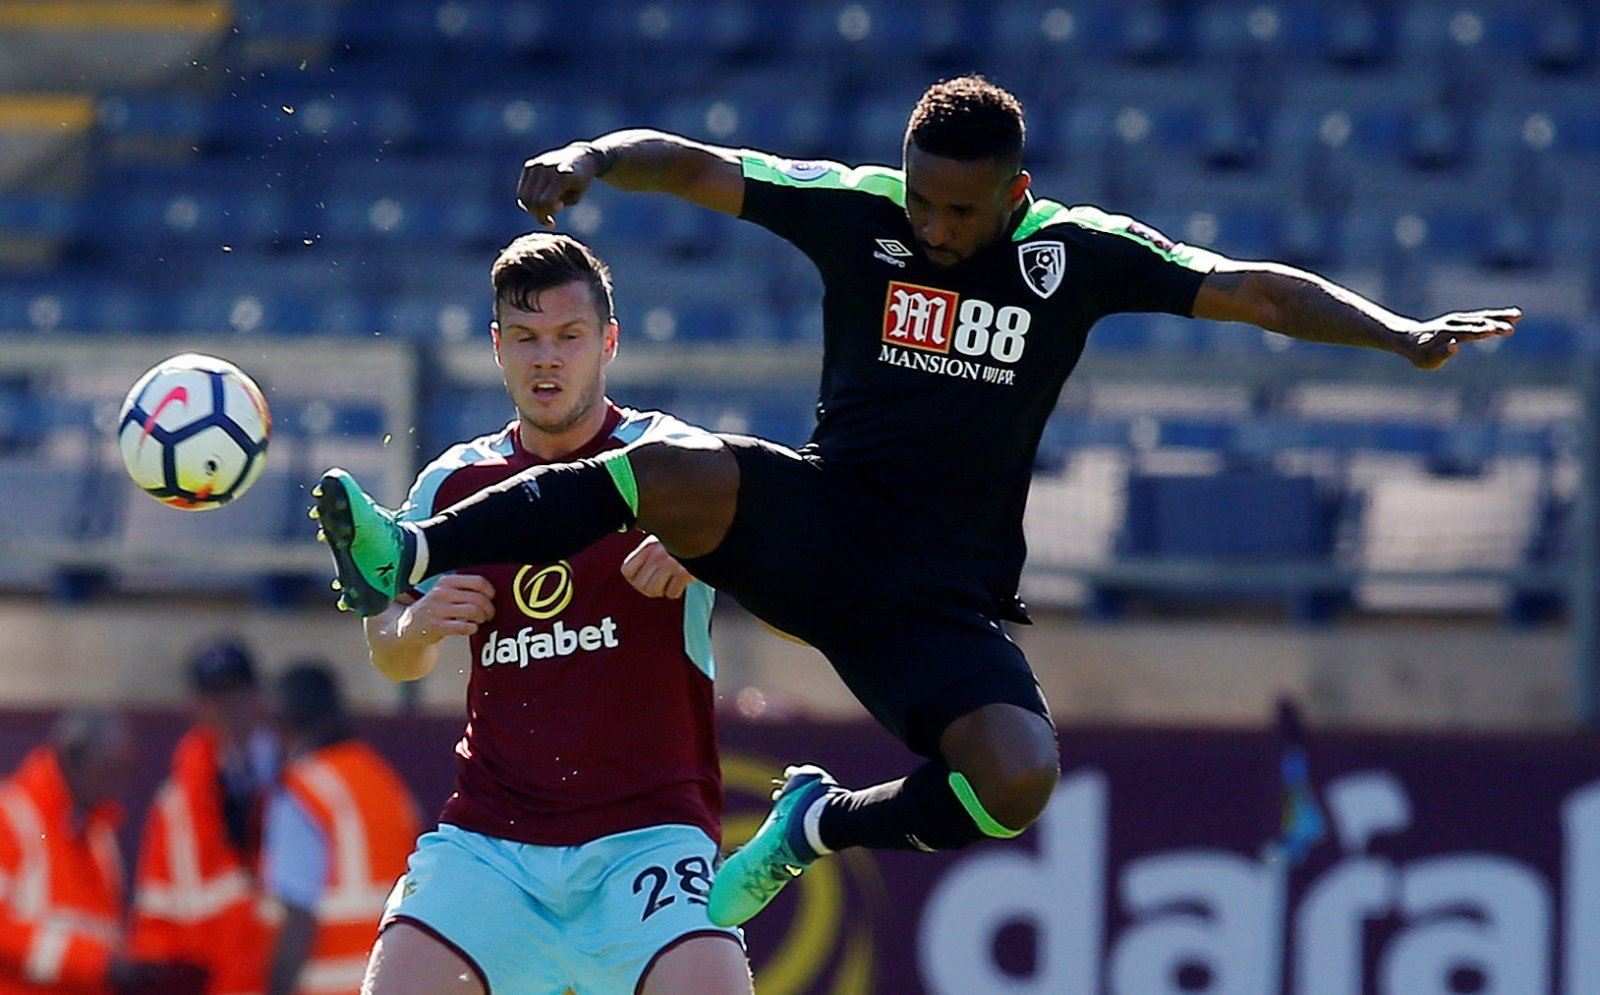 Sheffield United weigh up move for Jermain Defoe